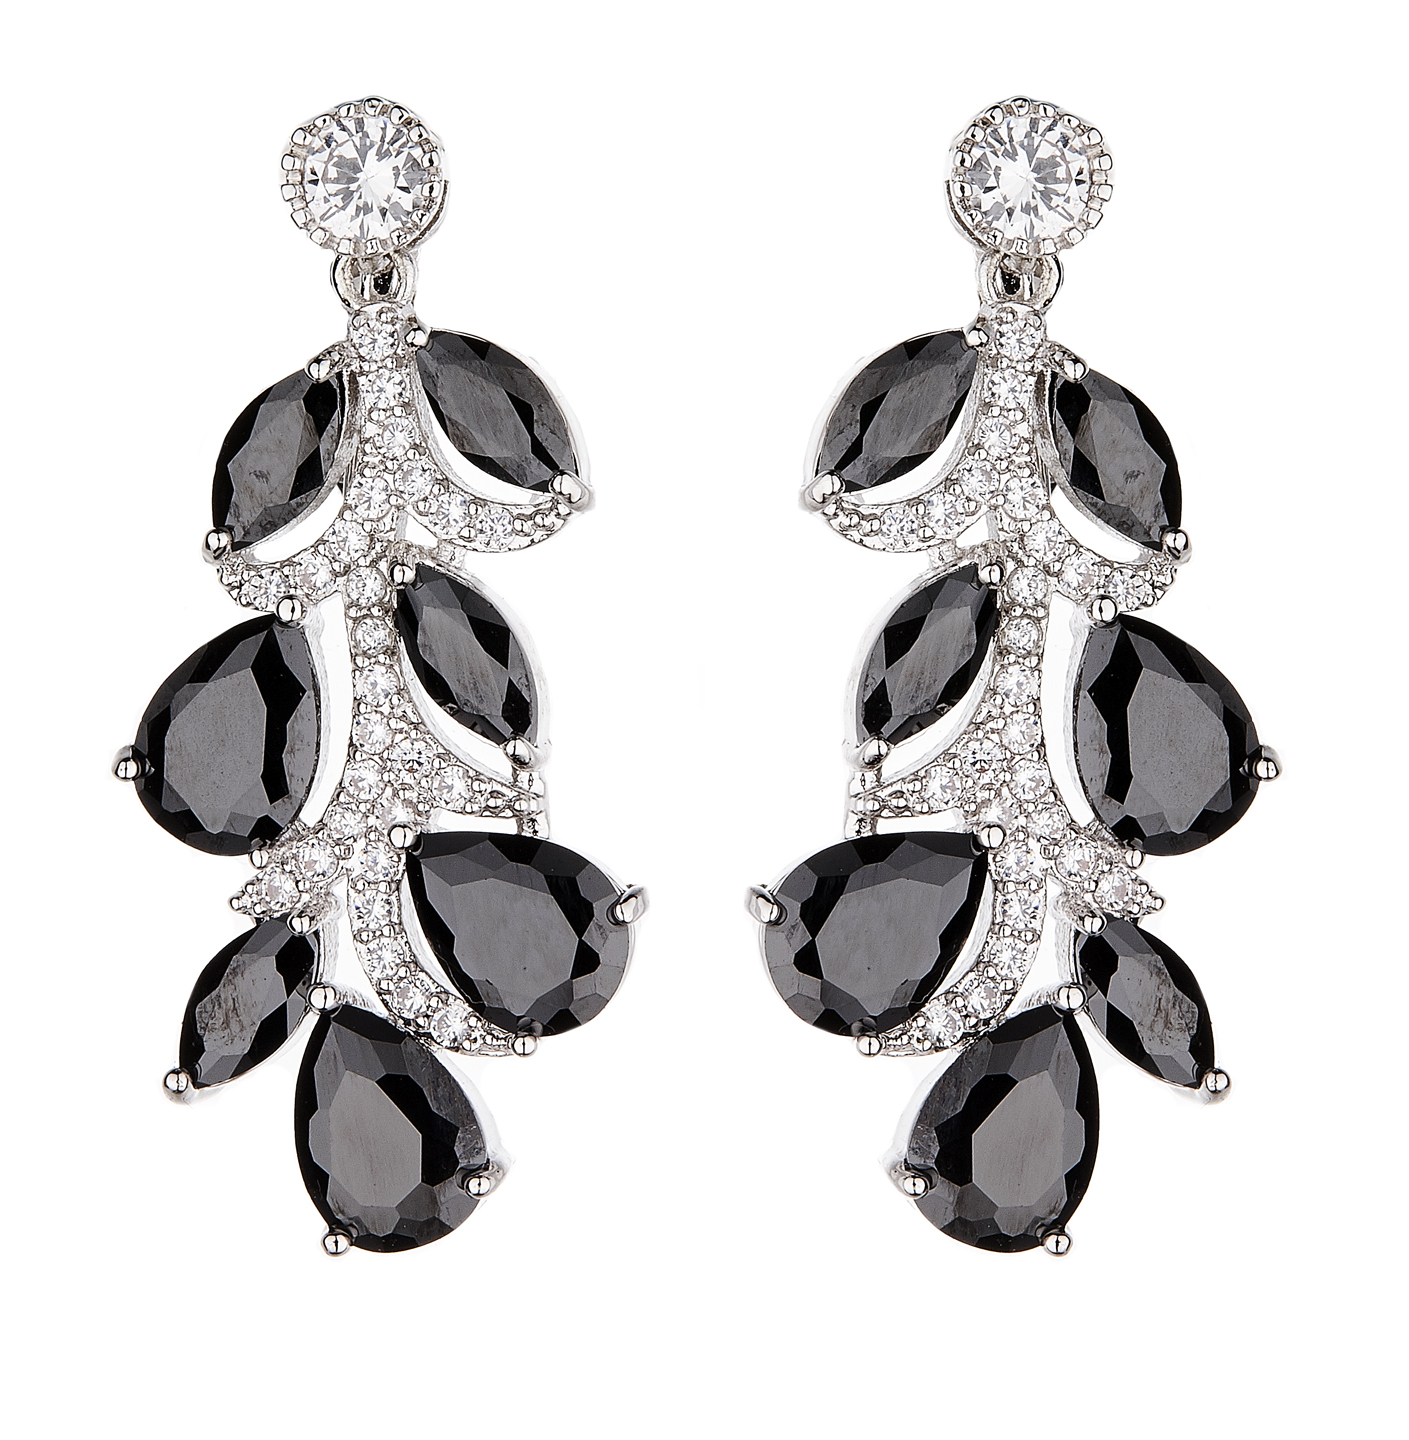 Clip On Earrings - Neo - silver luxury drop earring with black cubic zirconia stones and clear crystals